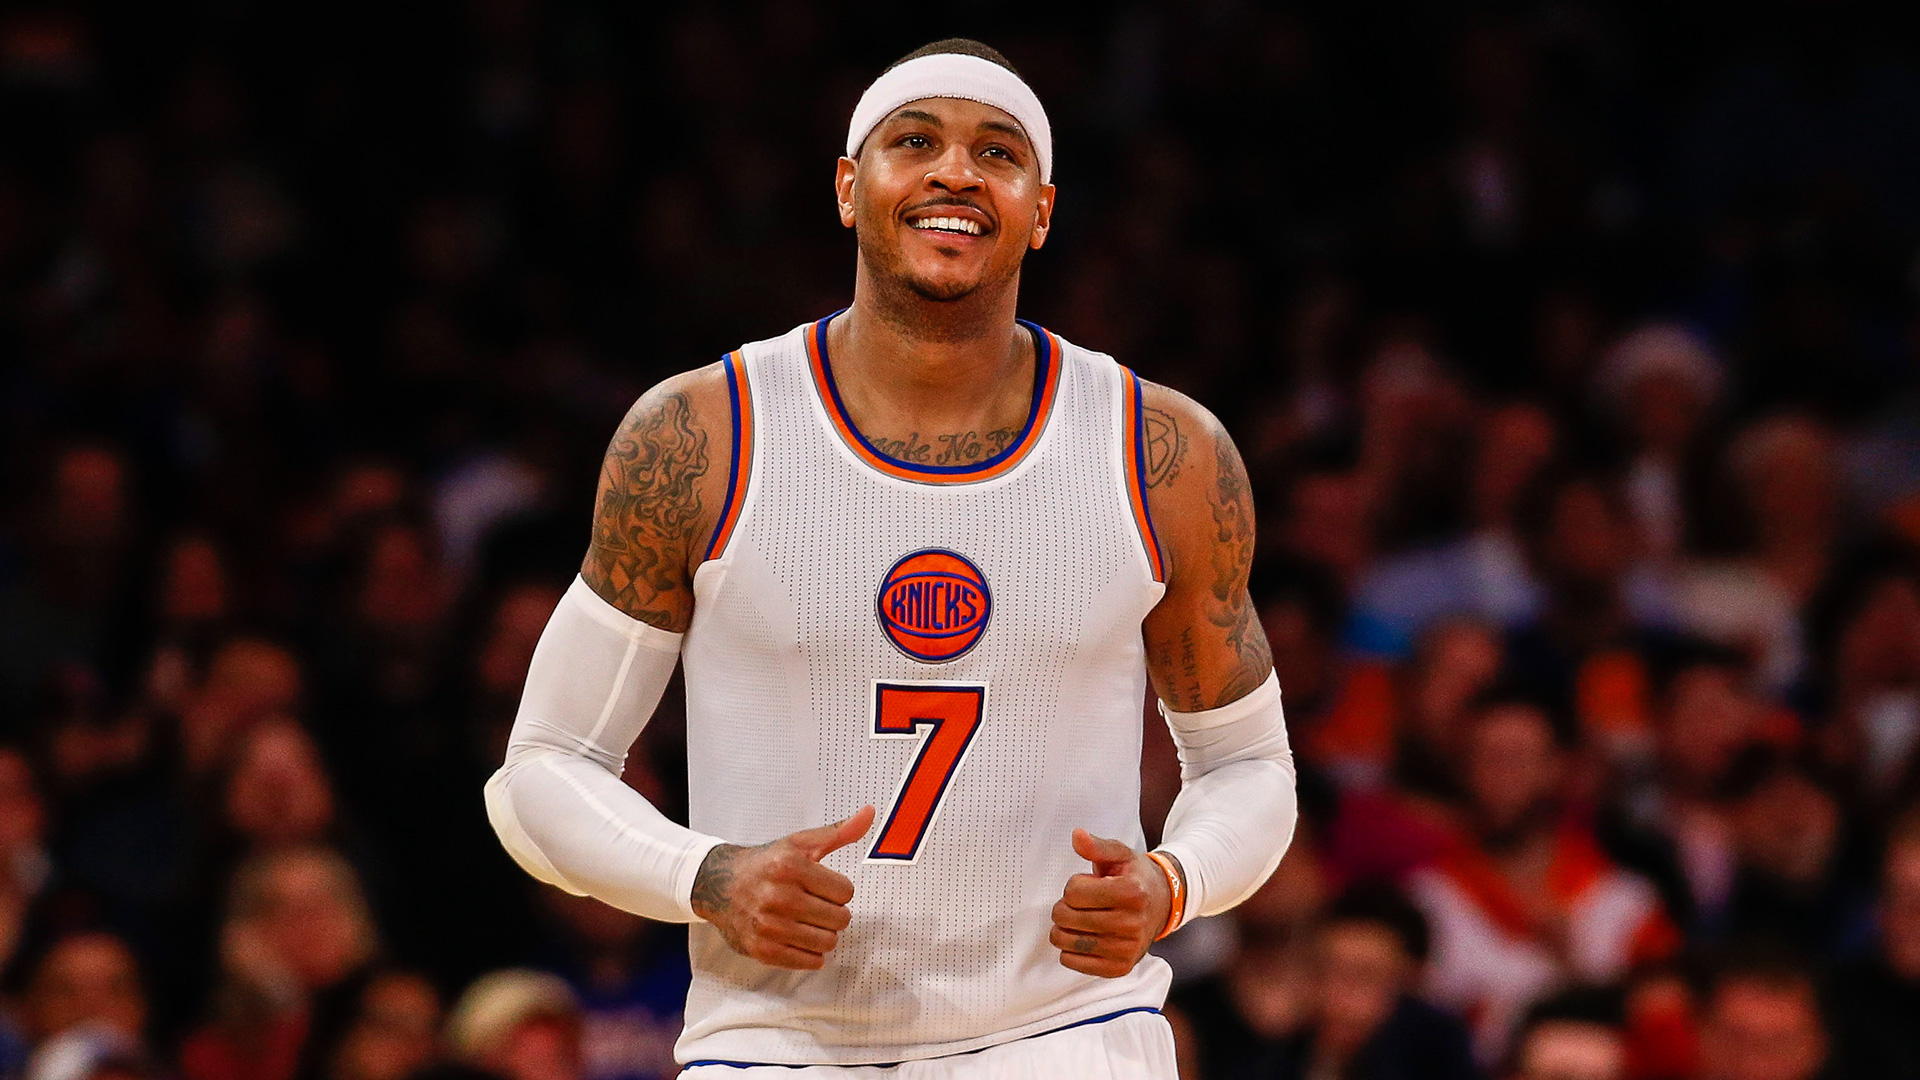 Carmelo-Anthony-100115-GETTY-FTR.jpg